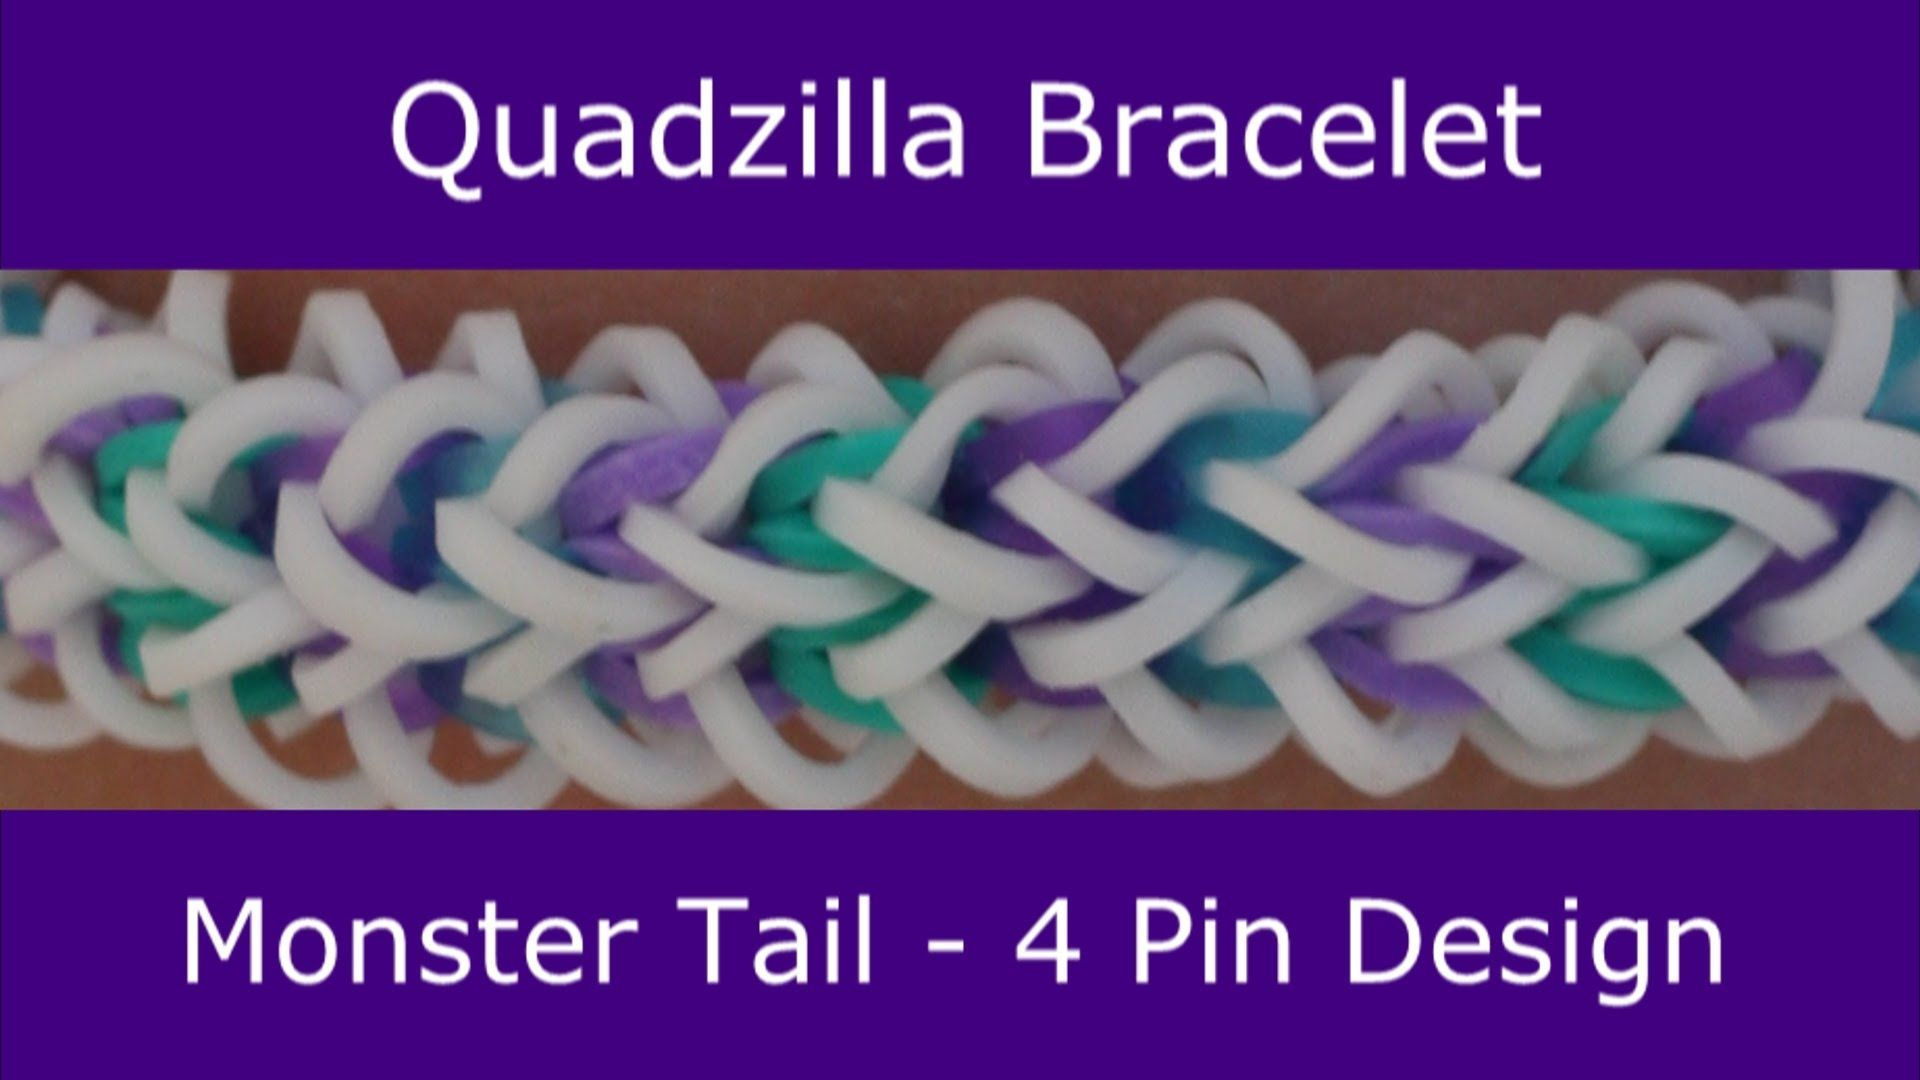 Monster tail quadzilla bracelet an official rainbow loom design